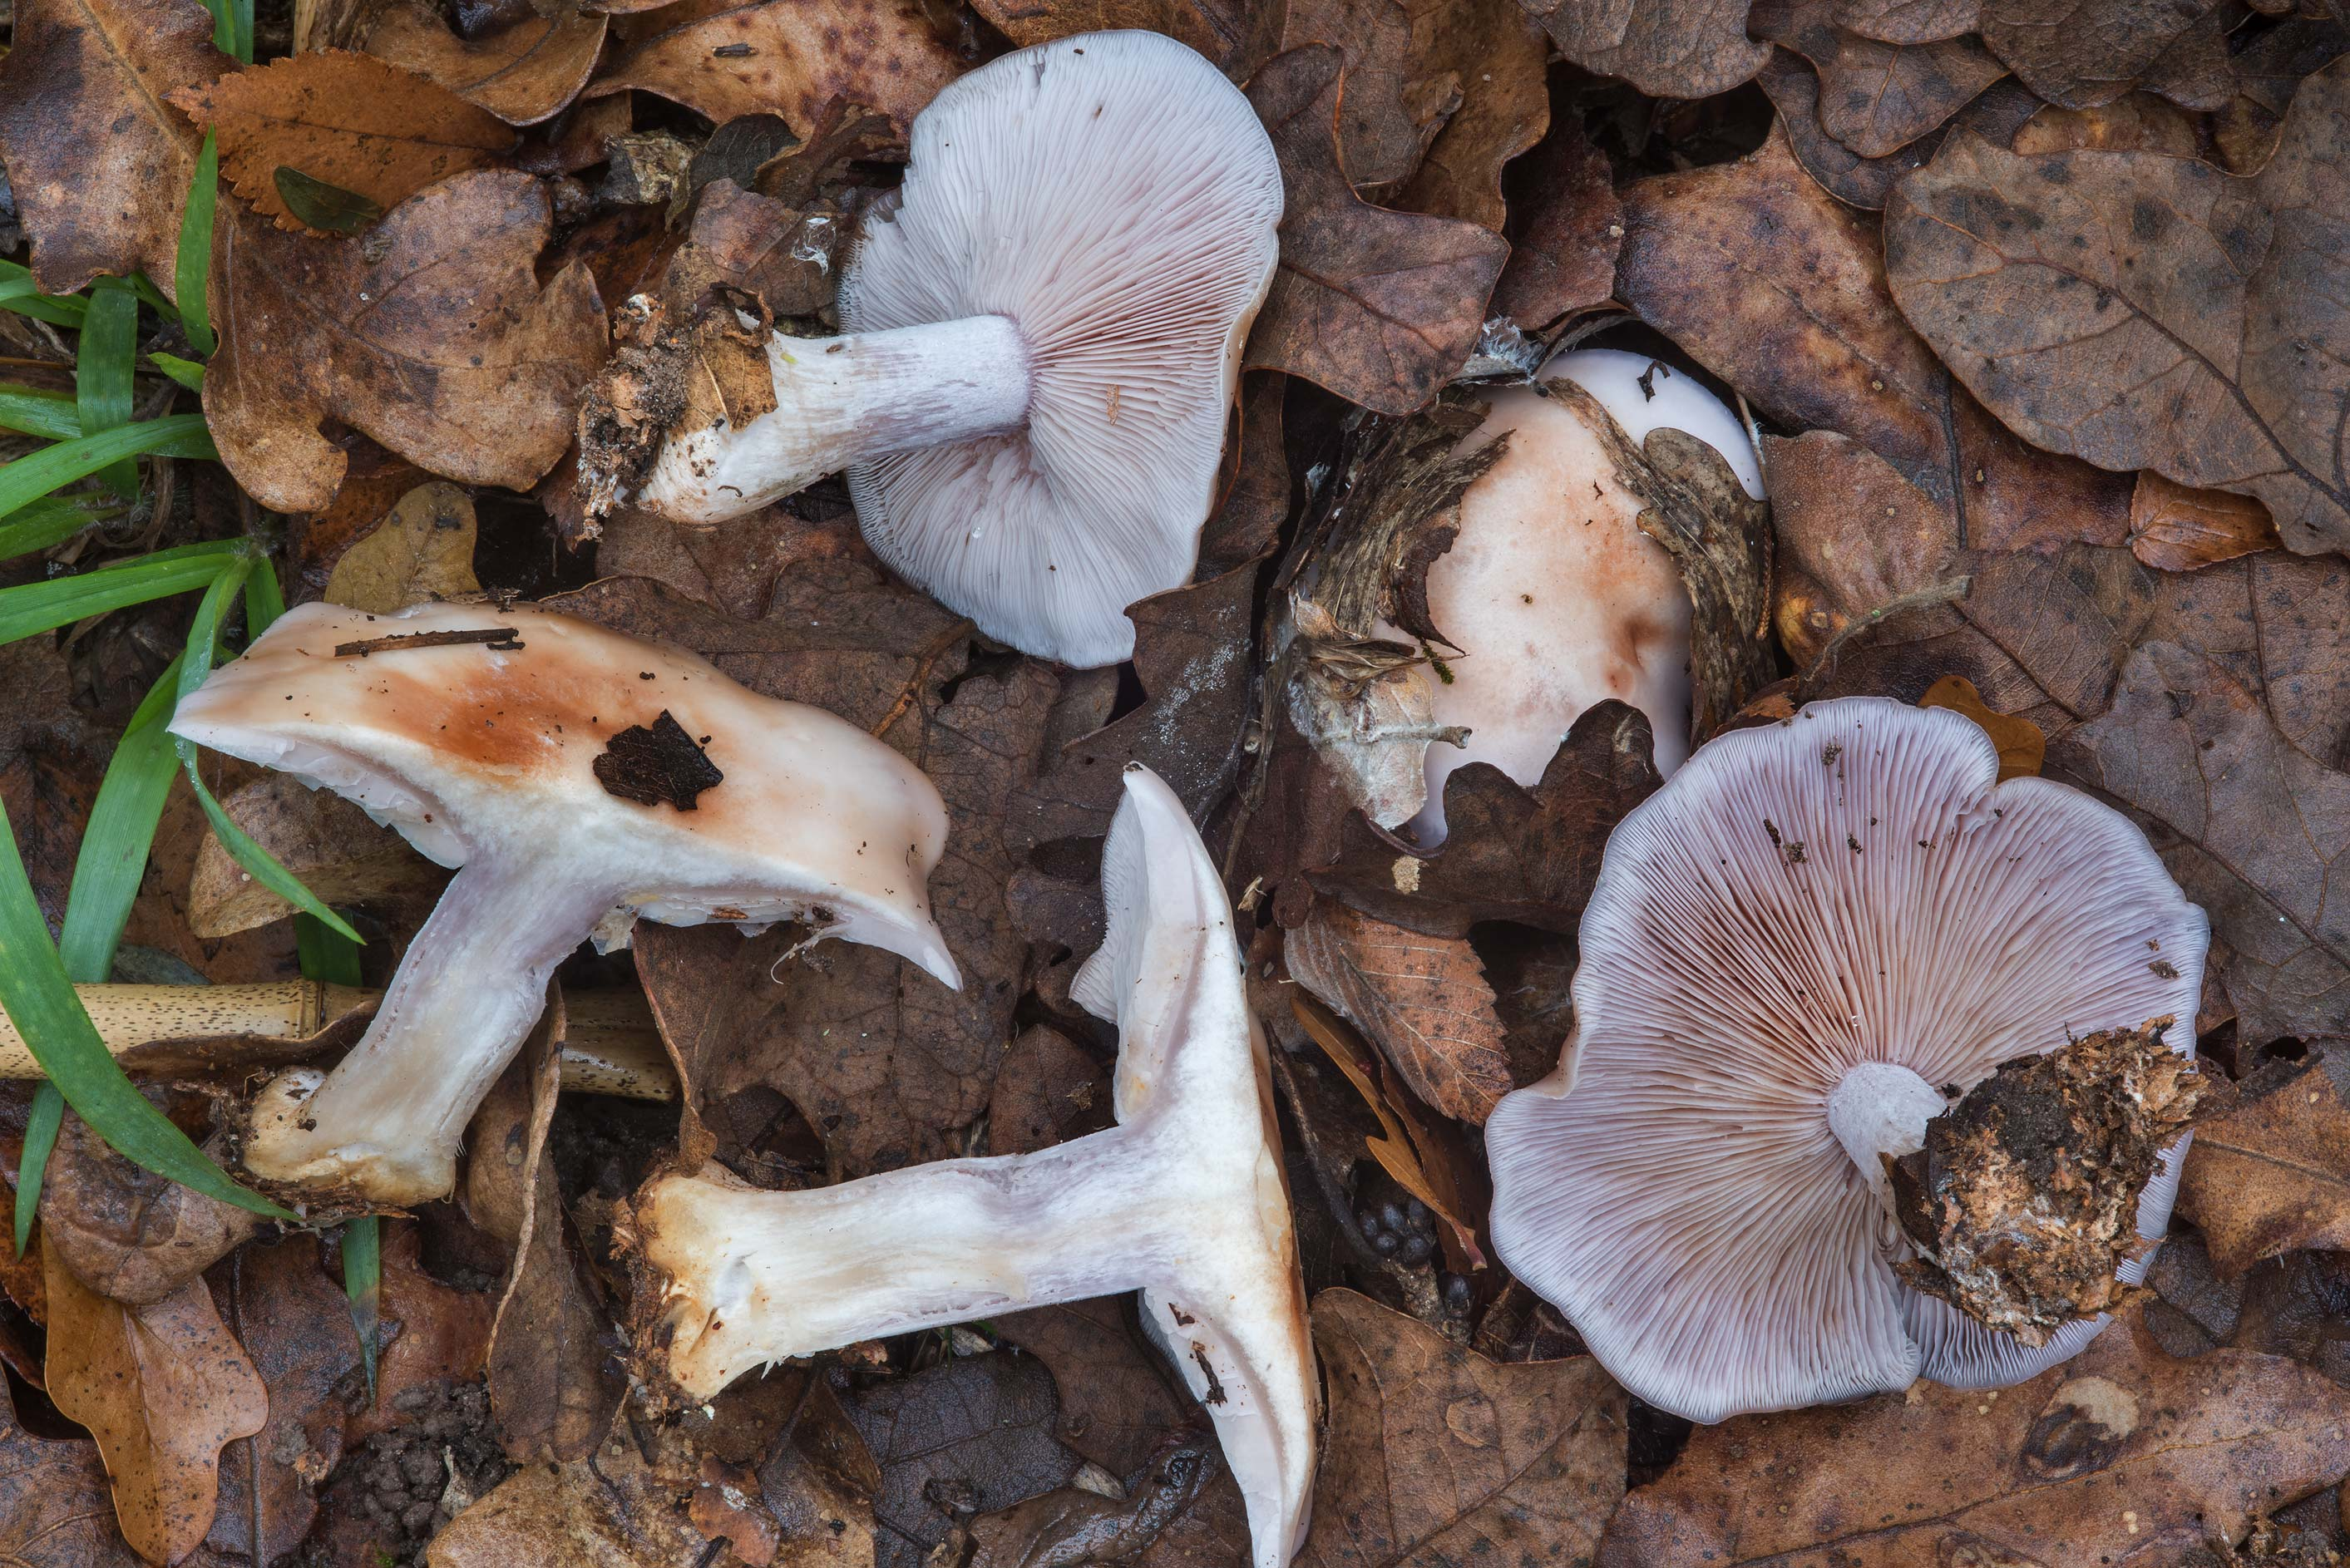 Dissected wood blewit mushrooms (Clitocybe nuda...in Hensel Park. College Station, Texas